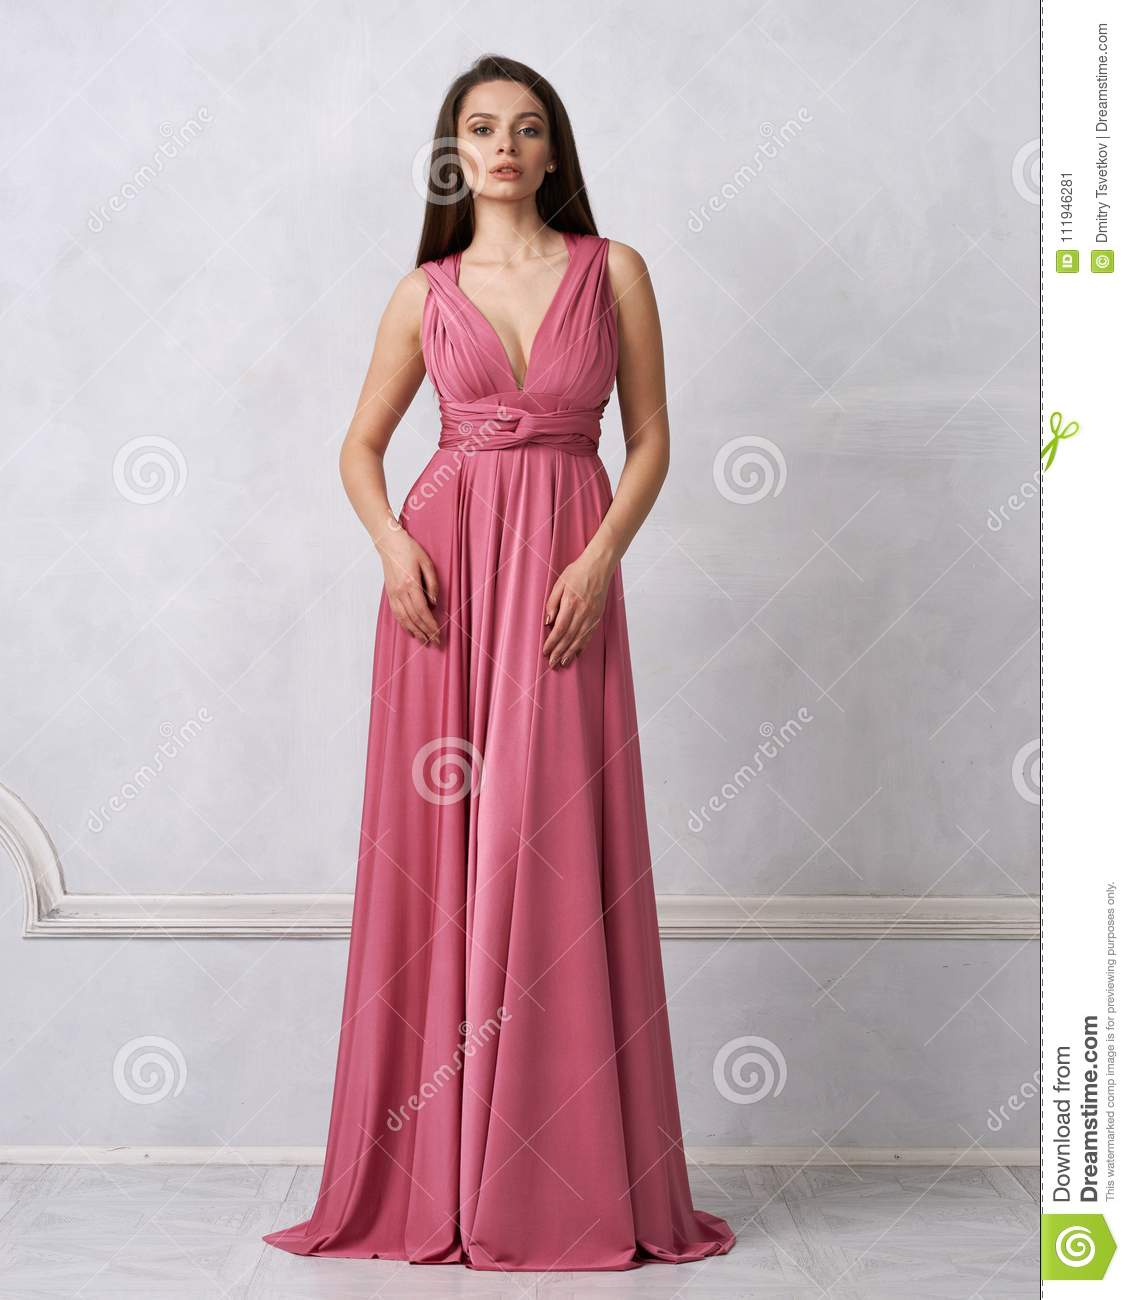 a7dddb2750 Beautiful long haired young woman dressed in stylish red bandeau maxi dress  posing against white wall on background. Elegant brunette female model ...